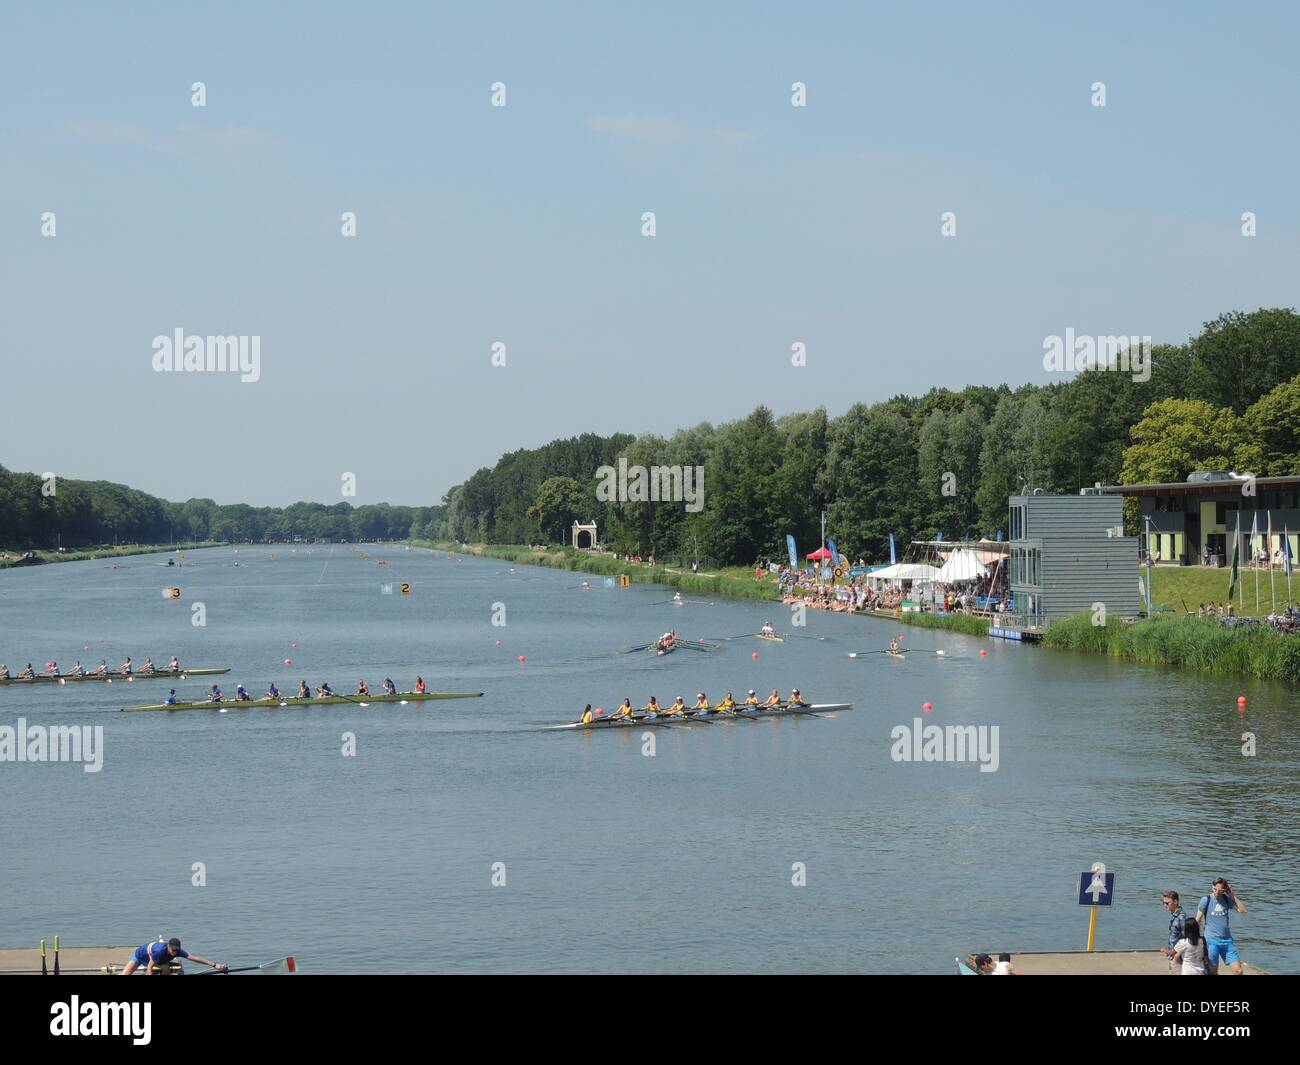 1931 Olympic Rowing Lake 2013 A.D. Stock Photo